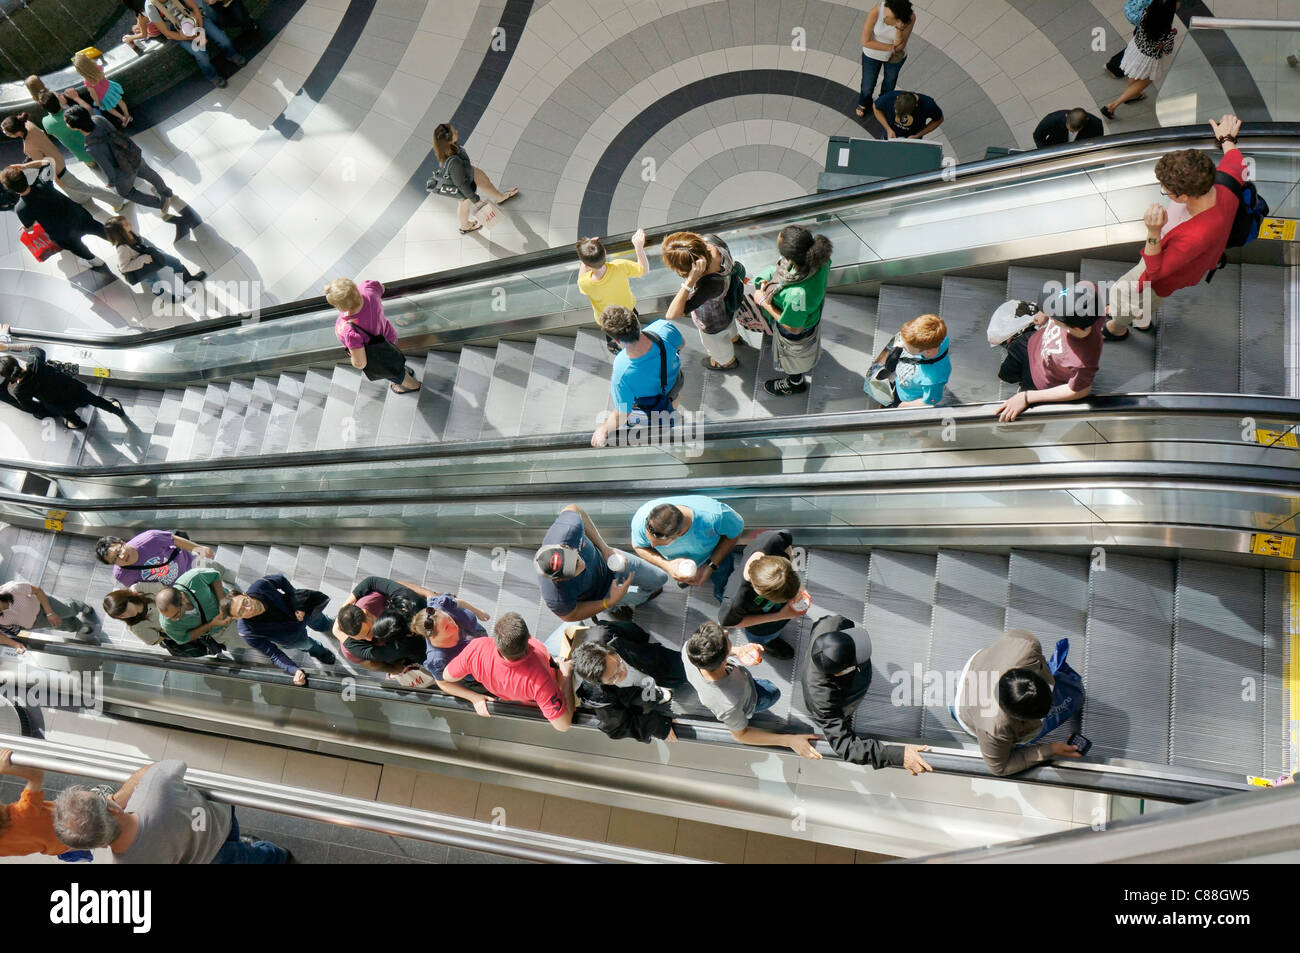 People on escalators in shopping mall - Stock Image